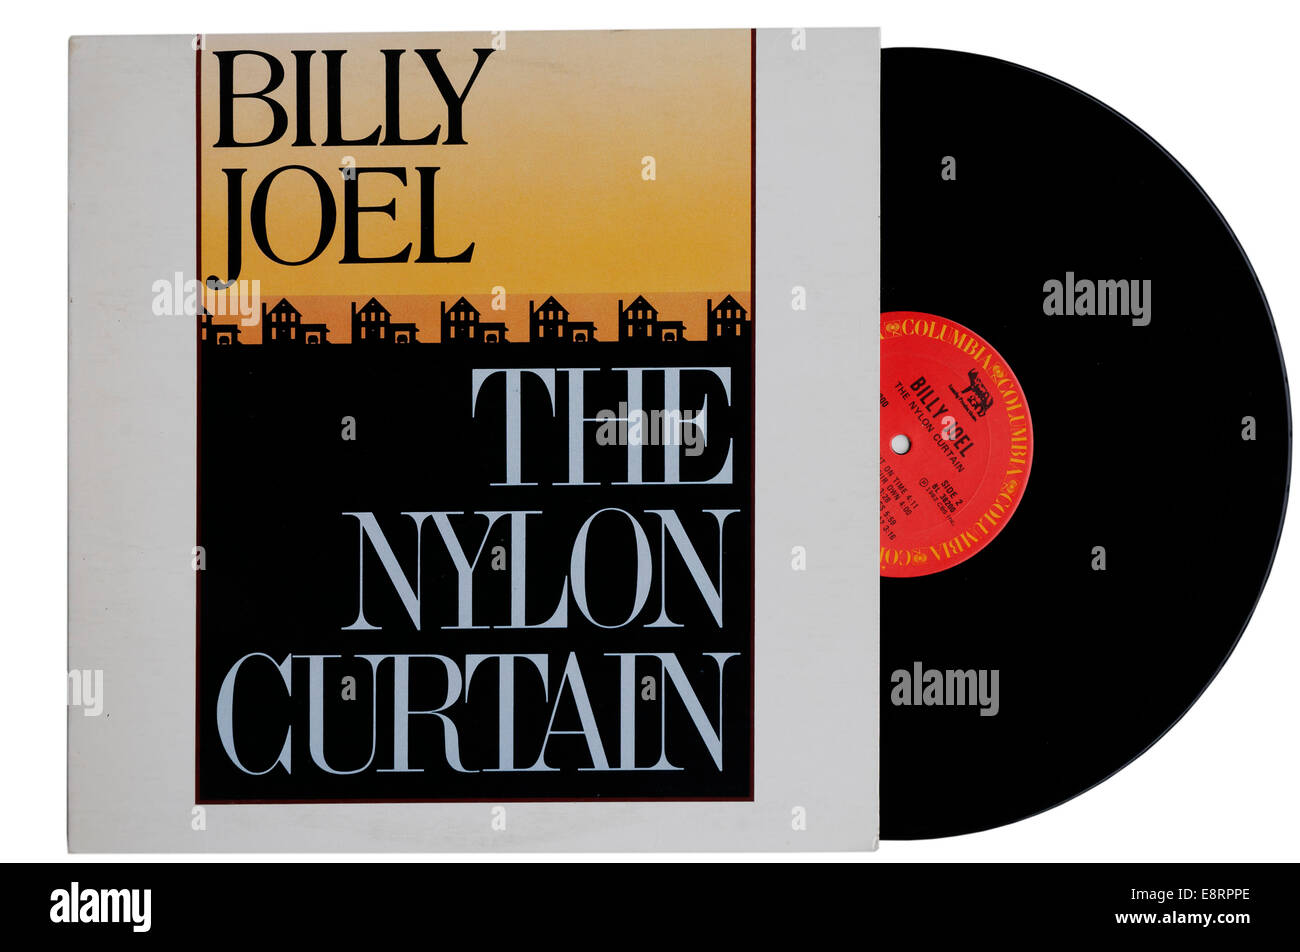 The Nylon Curtain album by Billy Joel - Stock Image